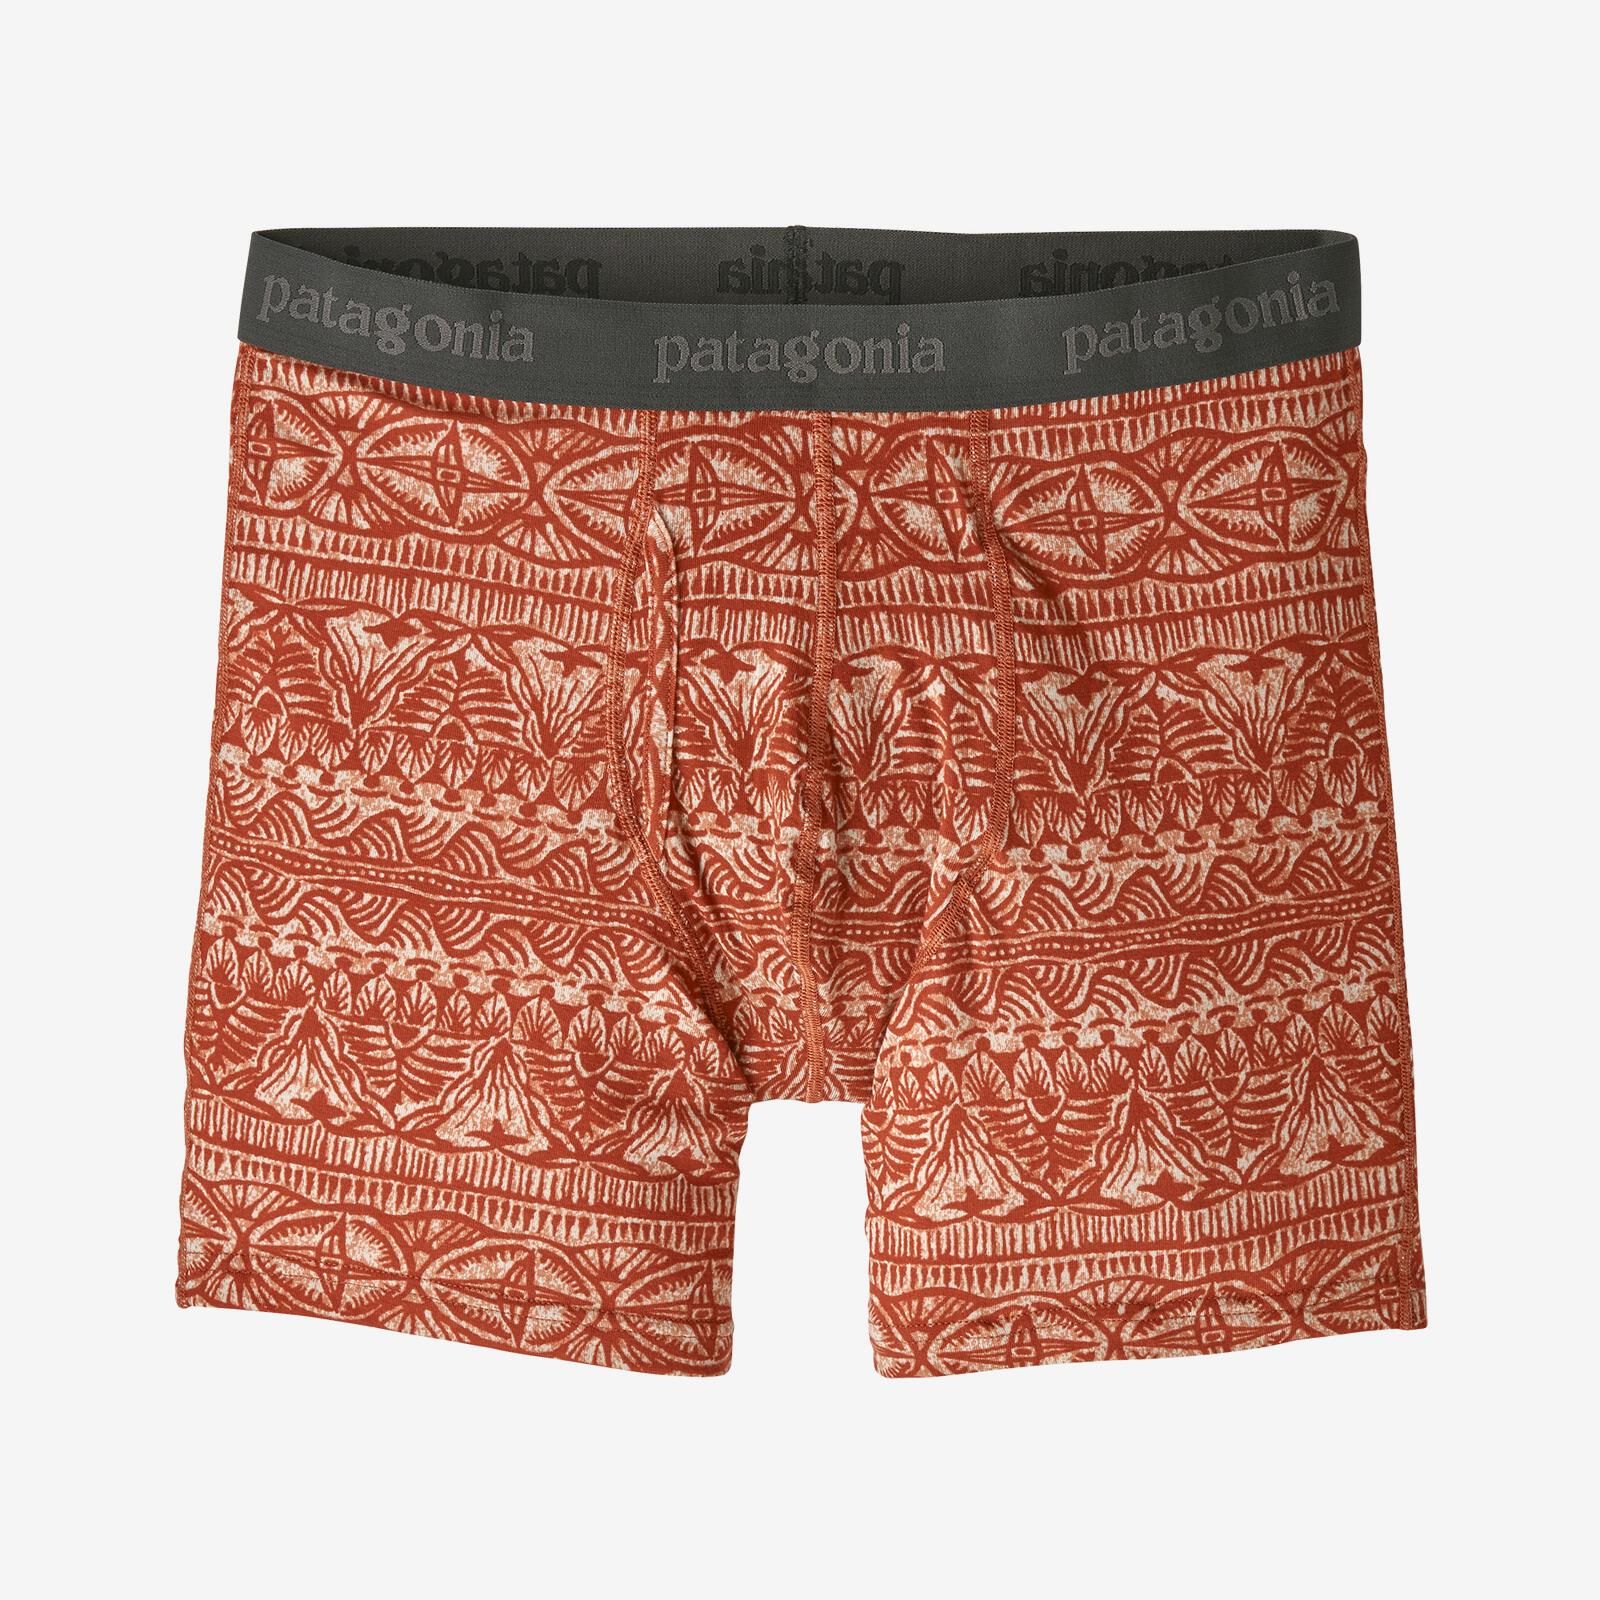 "Patagonia Men's Essential Boxer Briefs - 6"" MEN - Clothing - Underwear & Socks Patagonia Teskeys"